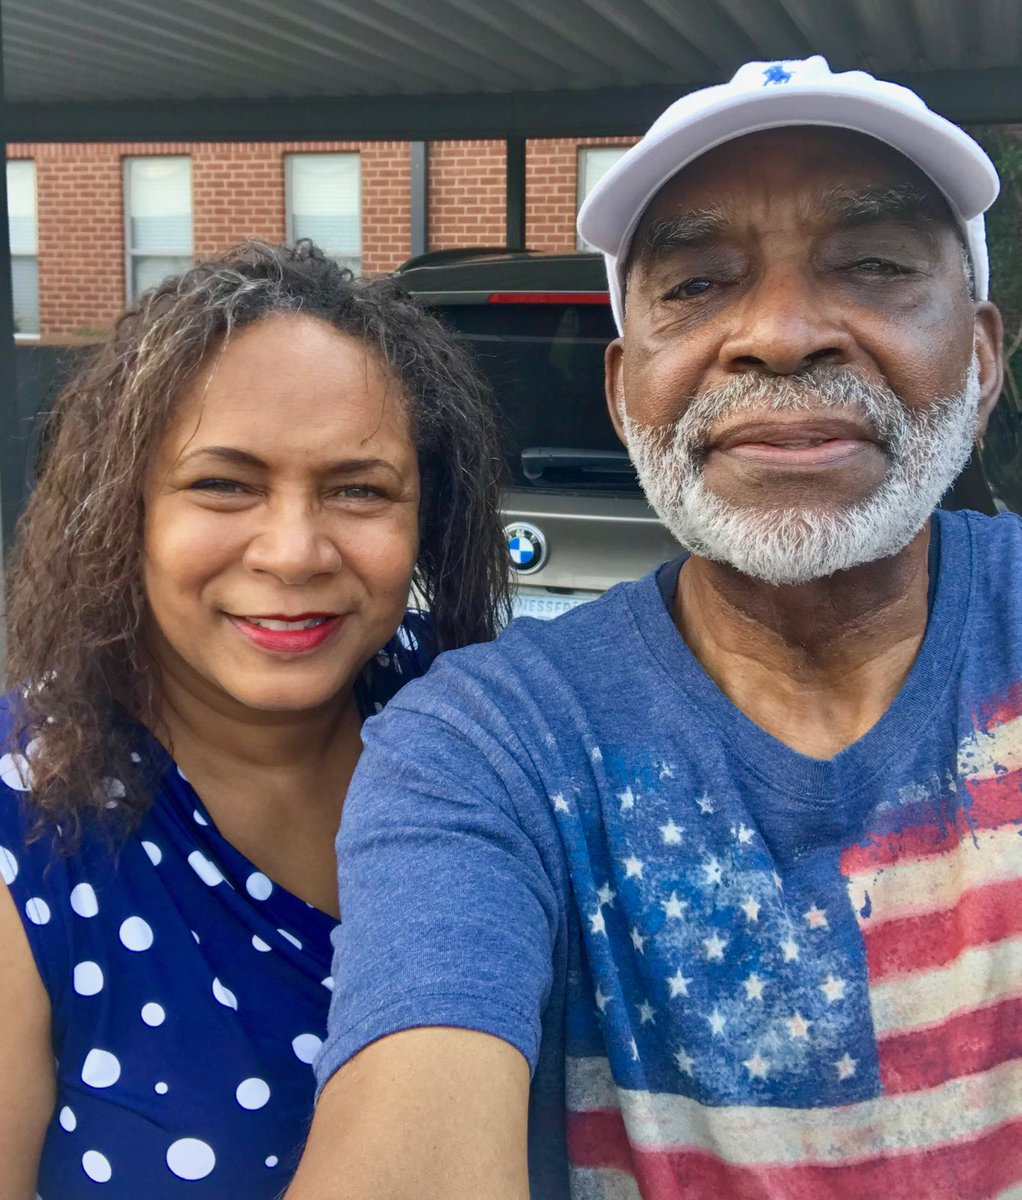 """RT @memphis_sirchas: """"Happy 4th of July"""" - the real happiness is being alive to enjoy i https://t.co/zRuz9d7Y6V"""